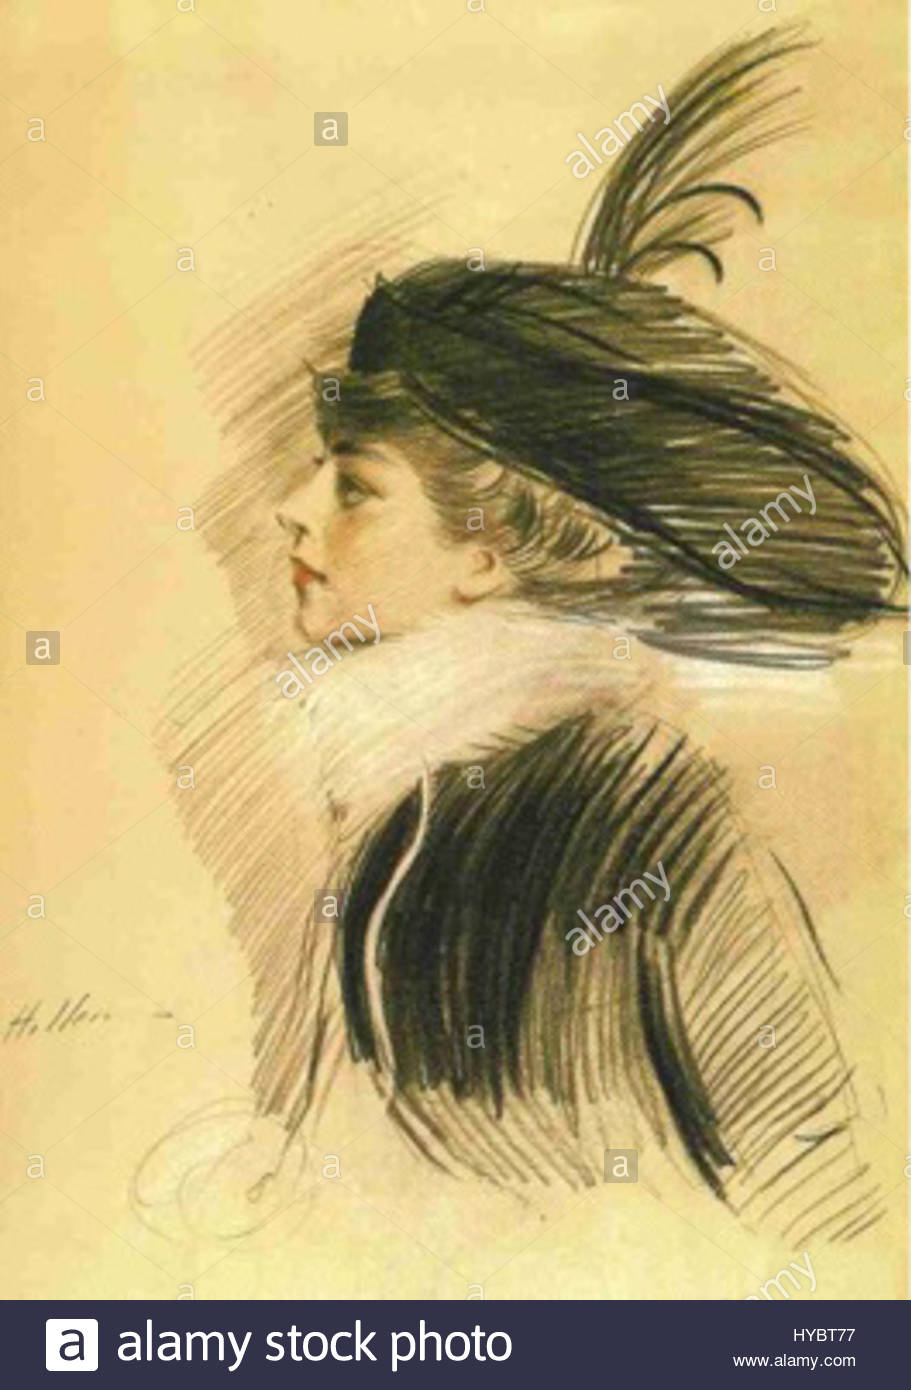 Portrait of Belle da Costa Greene by Paul-Cesar Helleu; 1913; Princeton University Library Records, Box 325; Princeton University Archives, Department of Rare Books and Special Collections, Princeton University Library